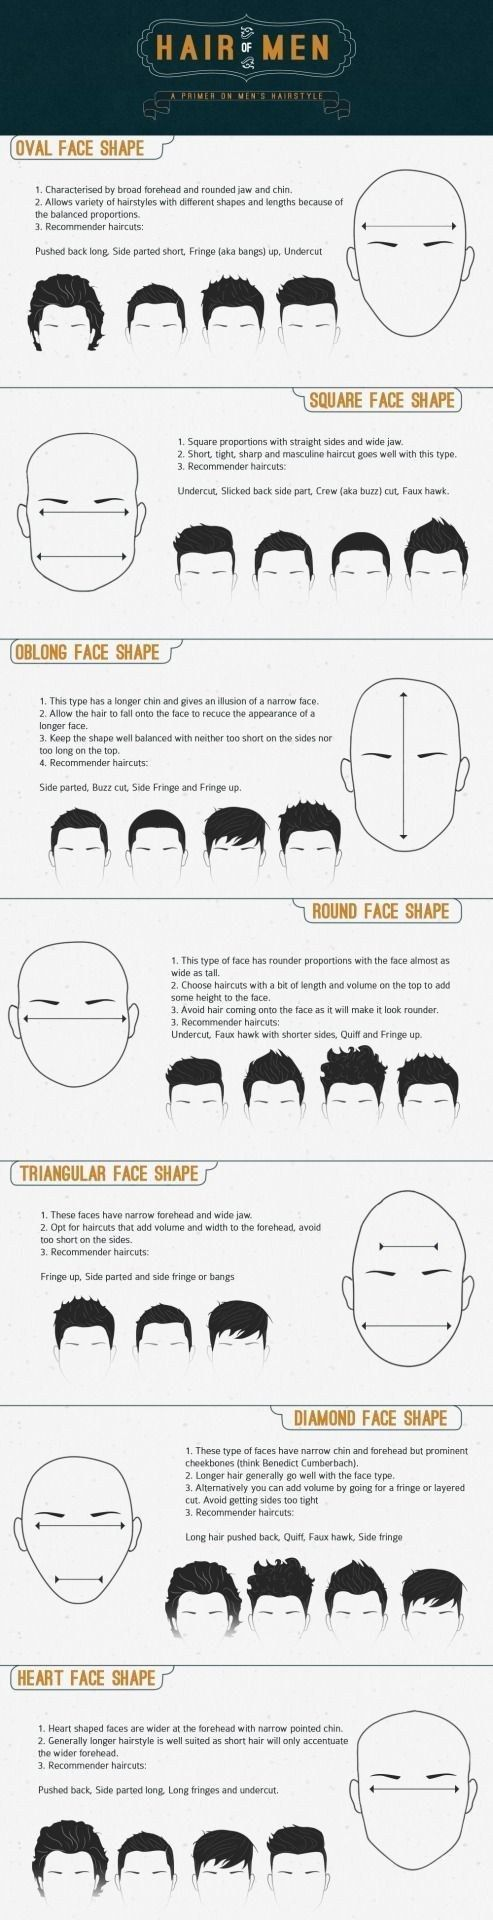 Here's what haircut works best on each face shape. | 21 Charts That Will Solve Every Guy's Grooming Problems: Here's what haircut works best on each face shape